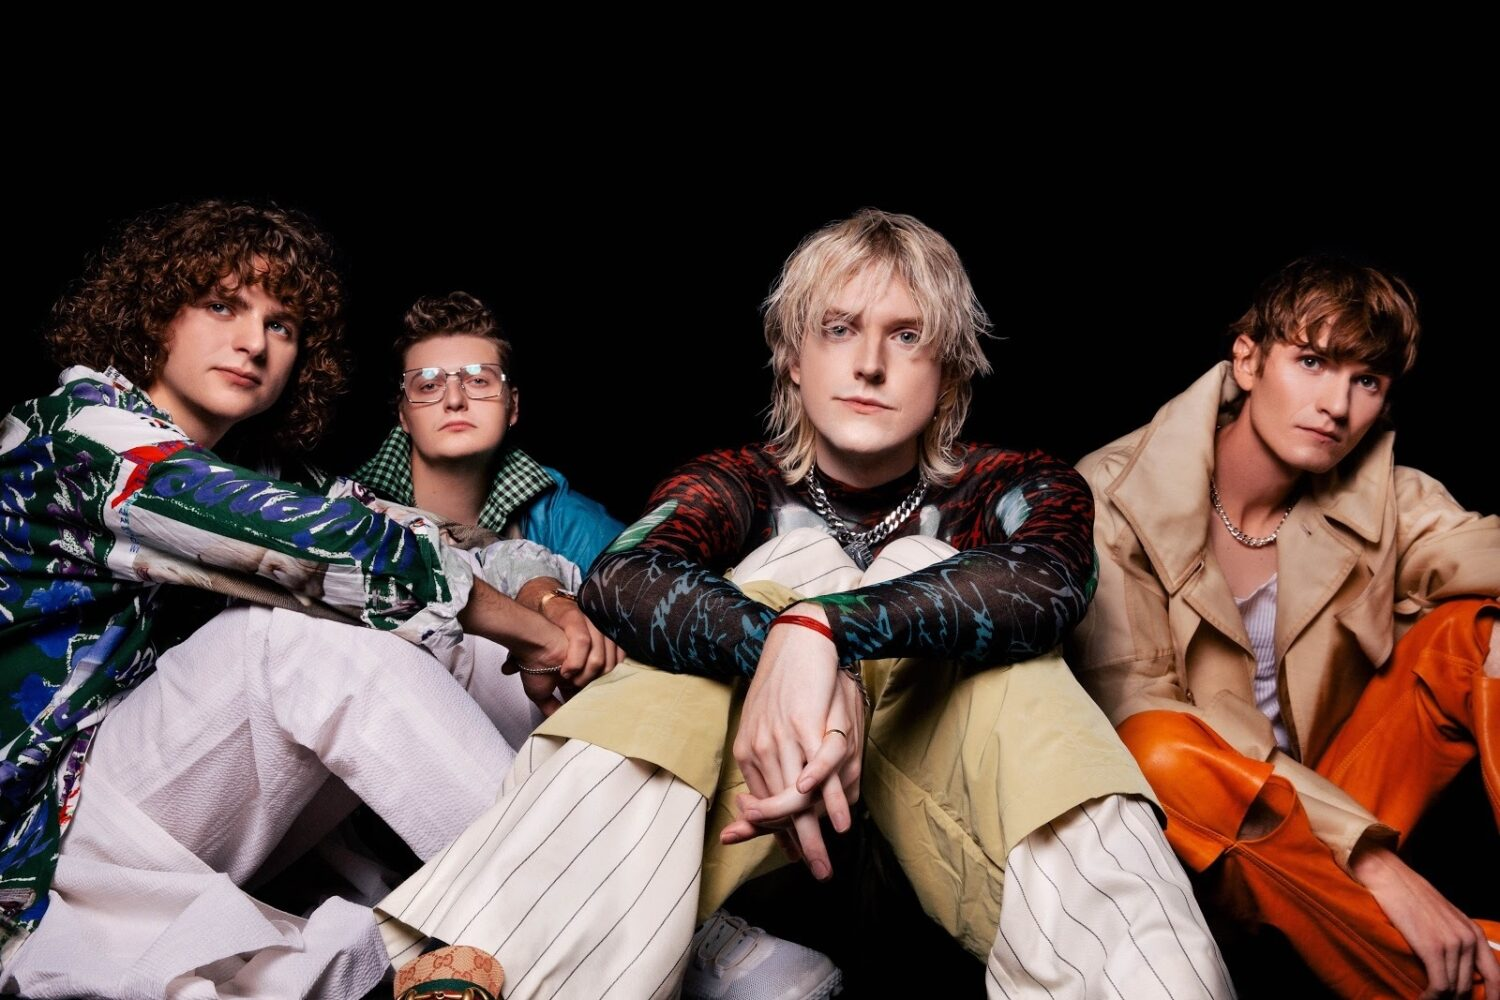 Sundara Karma release new track 'Artifice'